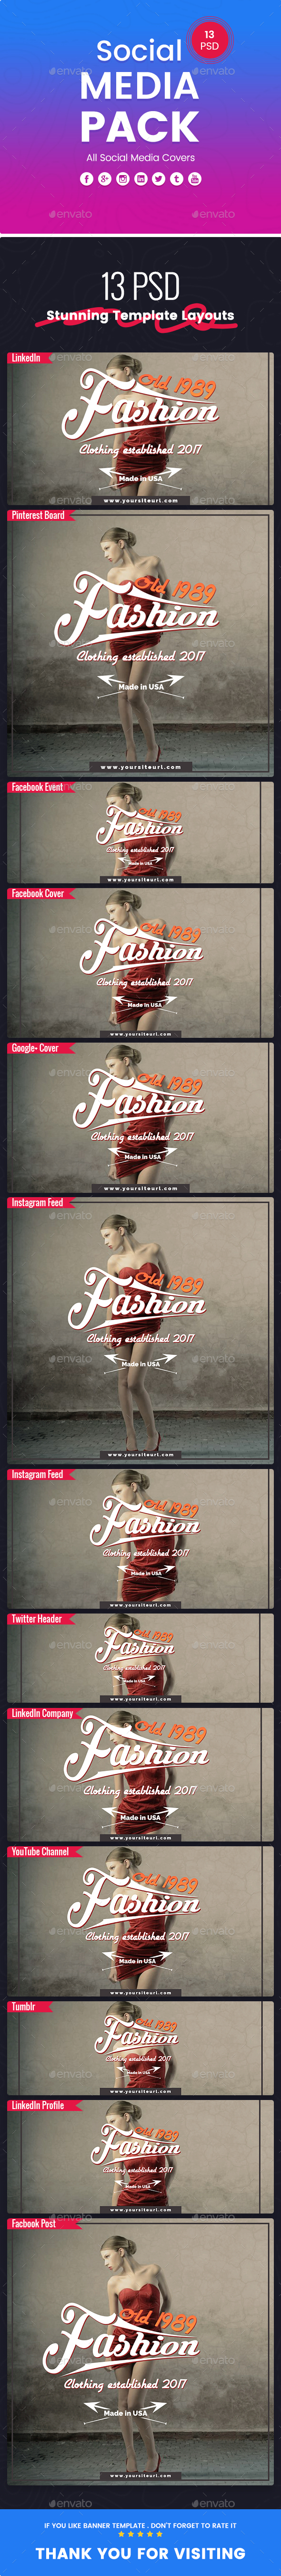 Fashion - Social Media Pack